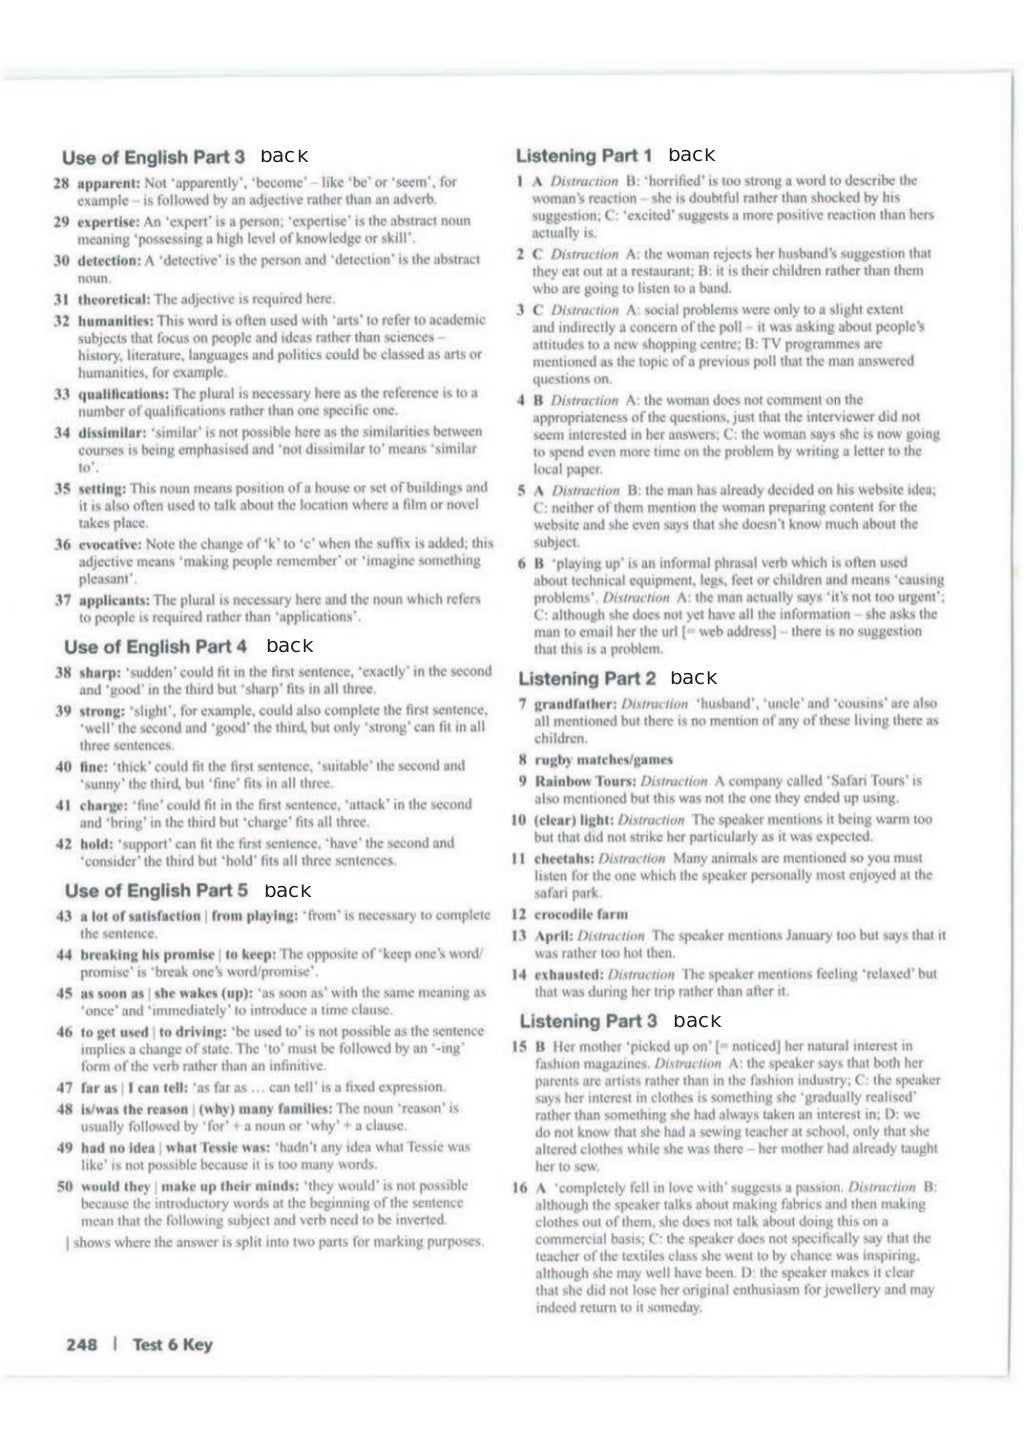 Advanced trainer 6 practice tests with answers book4joy (1) page 249